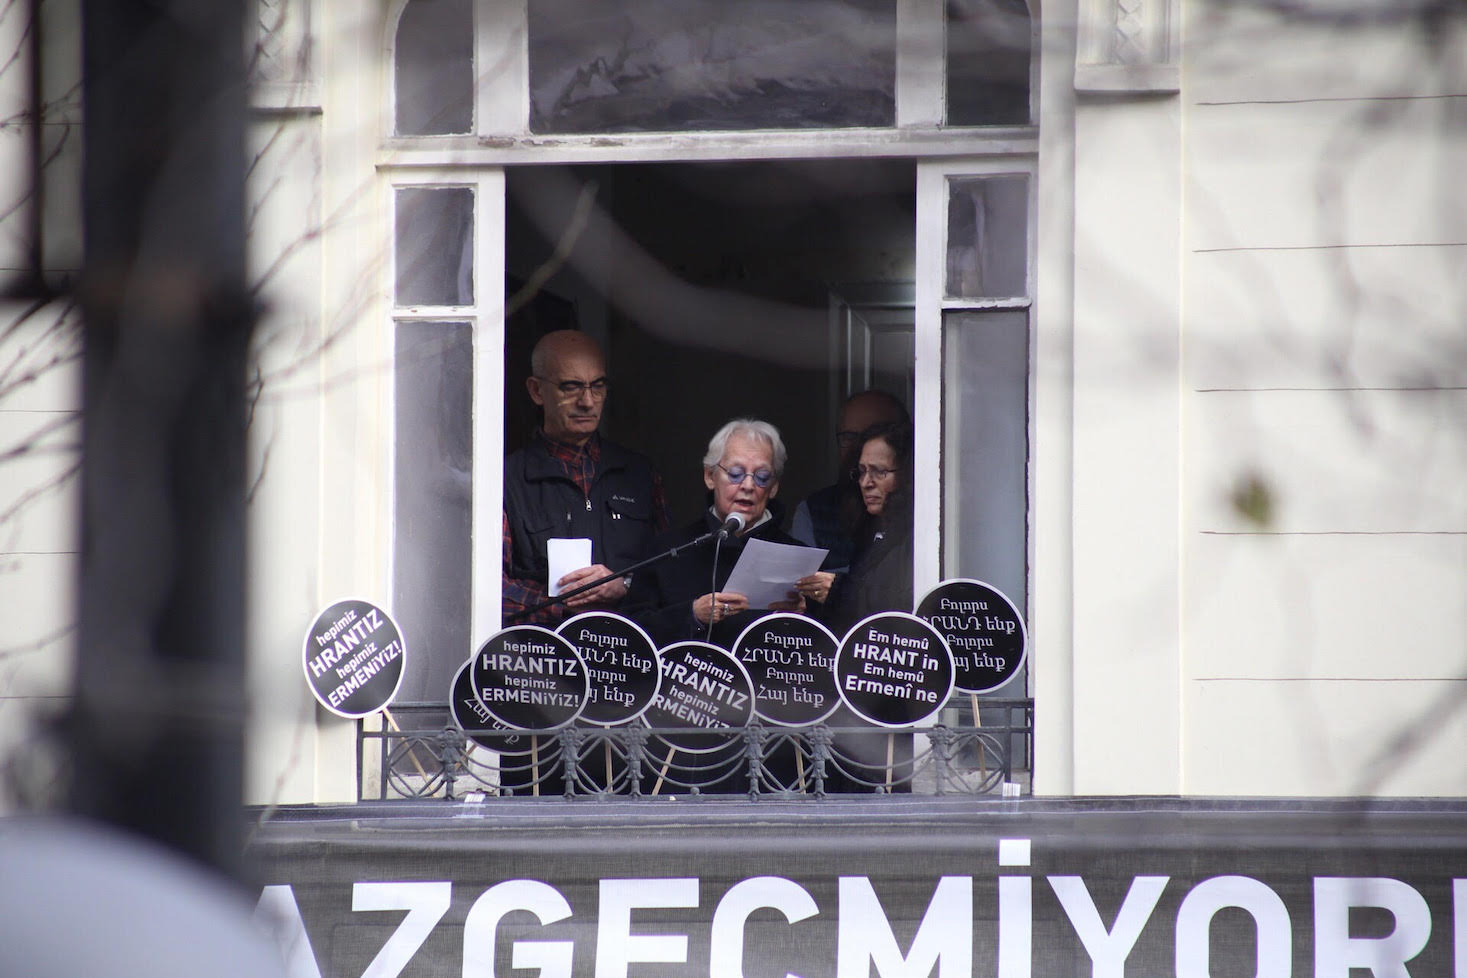 Filiz Ali speaks at Hrant Dink's anniversary: